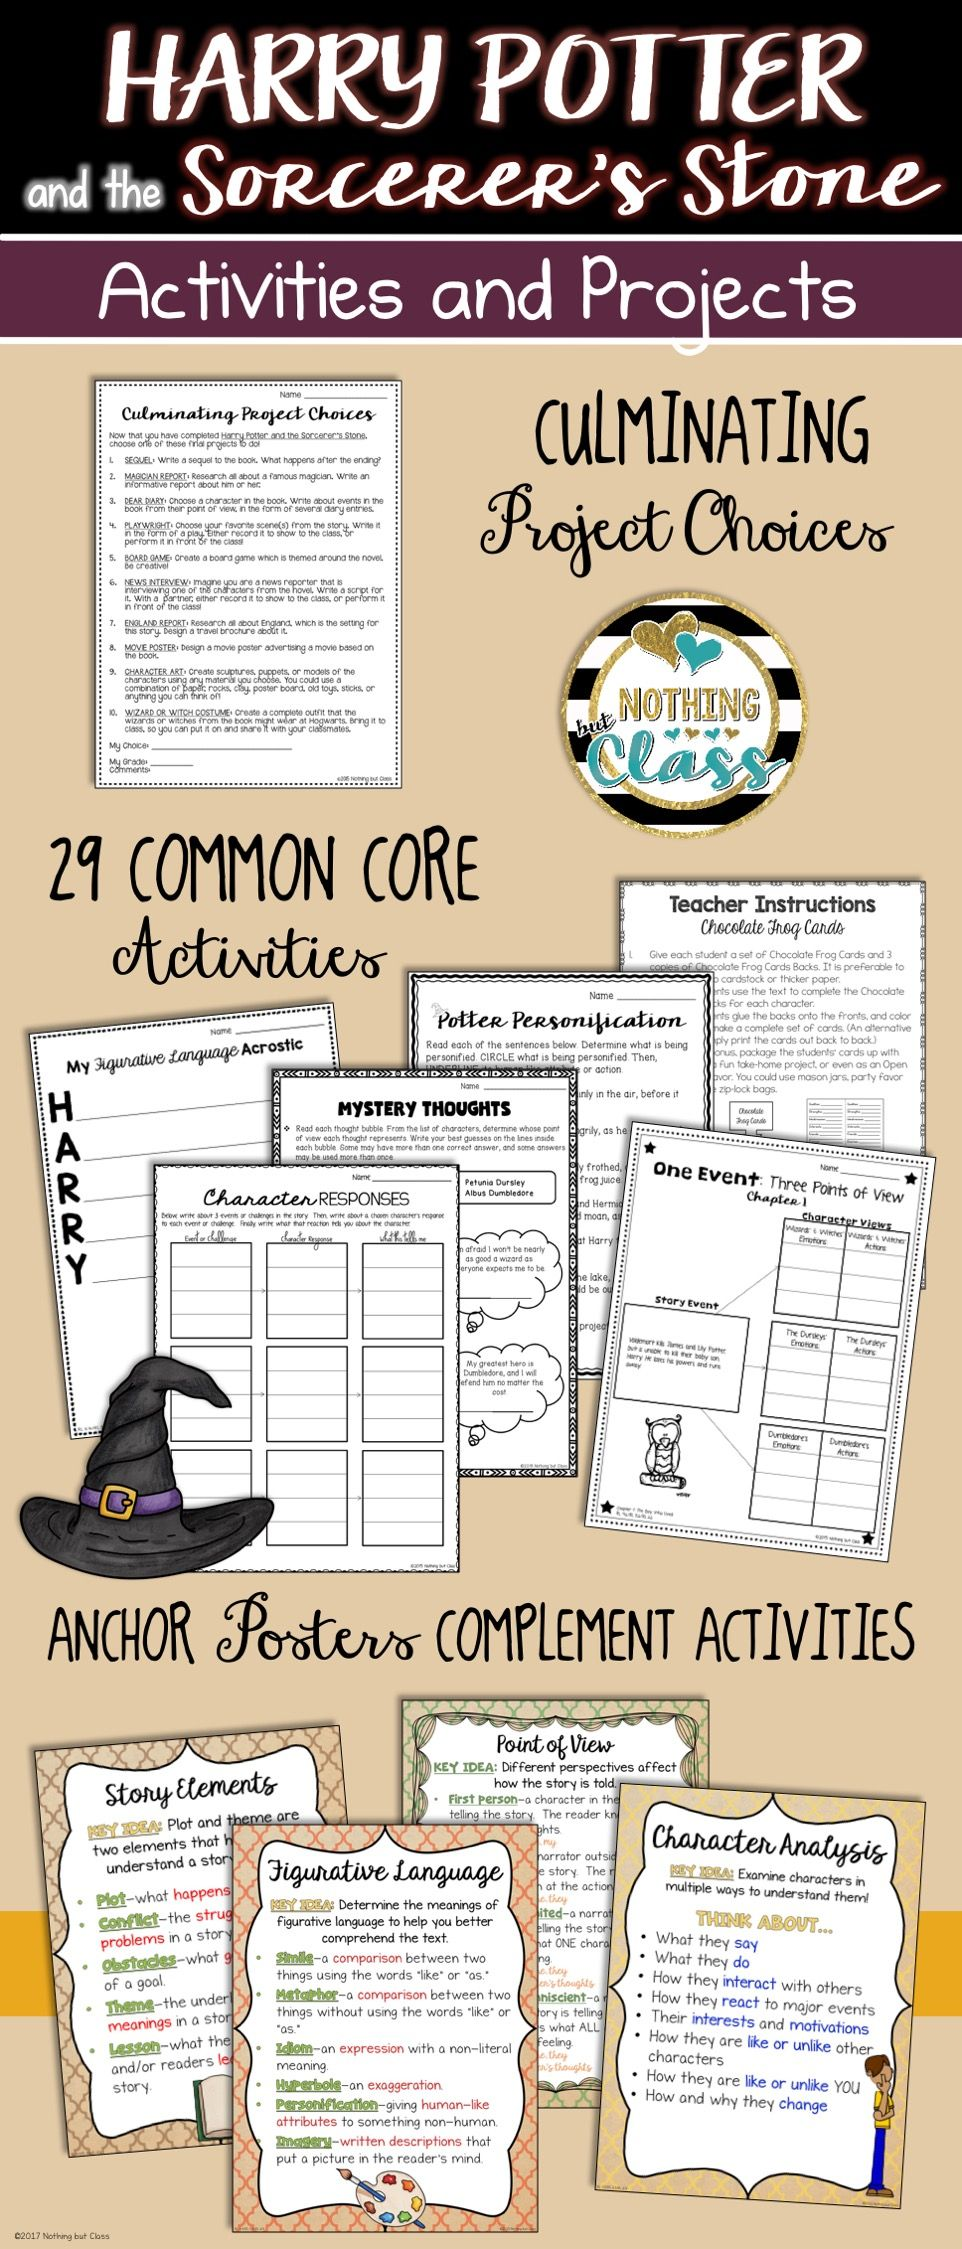 Thi 91 Page Activity Pack For Harry Potter And The Sorcerer S Stone By J K Rowling Co Lesson Classroom Reading Response Activities Literary Analysi Essay